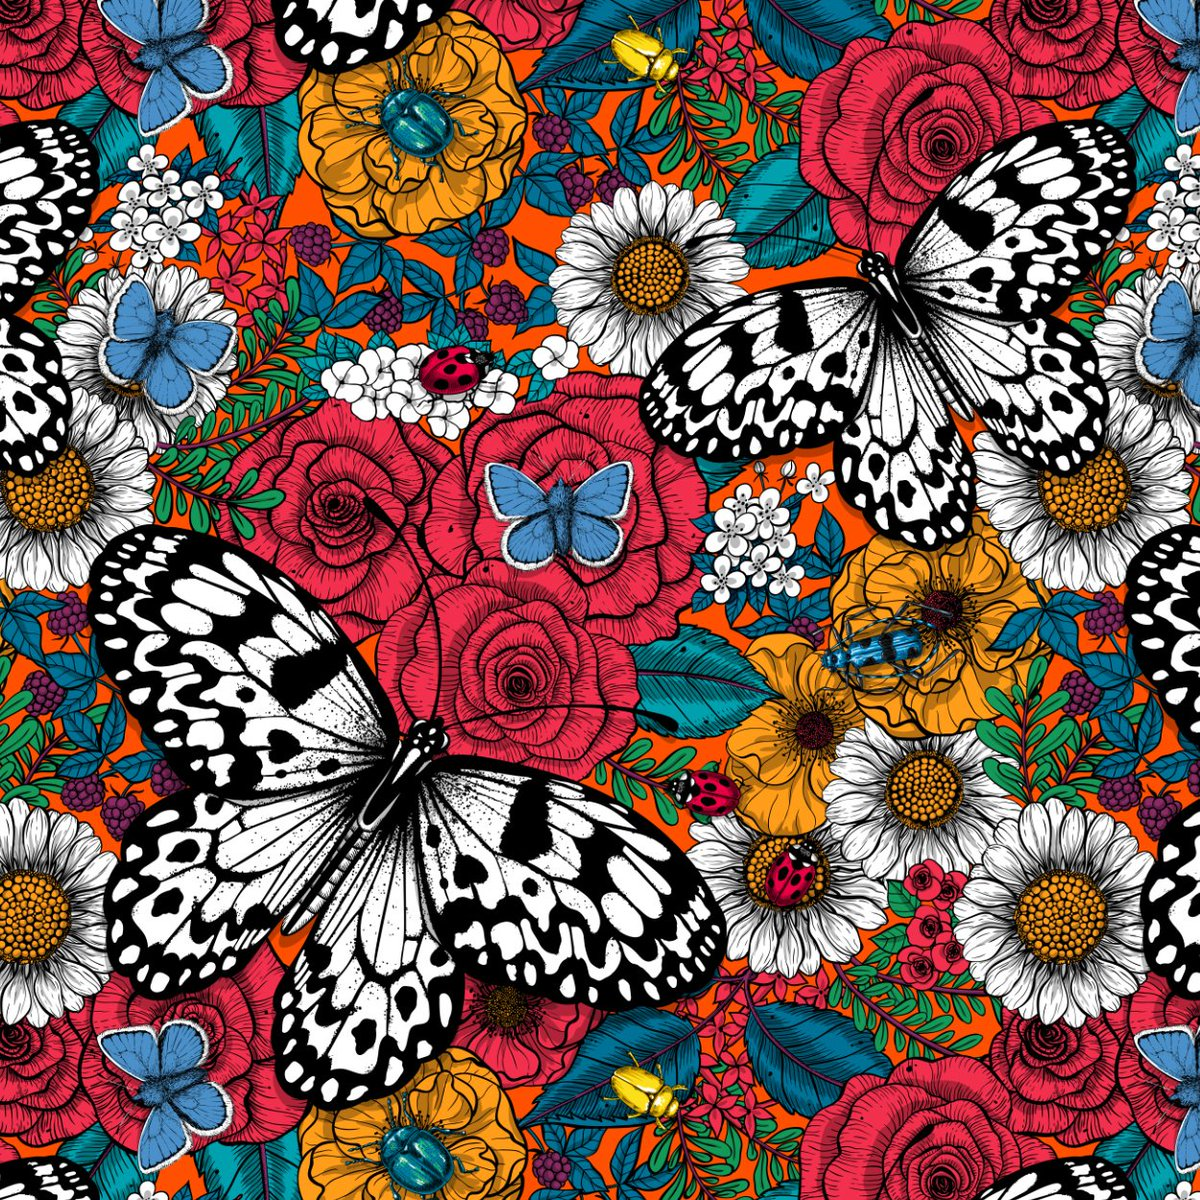 """""""A colorful garden"""" is my entry for this week Spoonflower's challenge """"Maximalism"""". I'll be very grateful to any of you who votes for me, link:  http://bit.ly/2Civtr8 #paperkite #butterfly #butterflydrawing #beetle #roses #rosedrawing #flower #botanical #botanicalpatternpic.twitter.com/YOndtLWEJJ"""